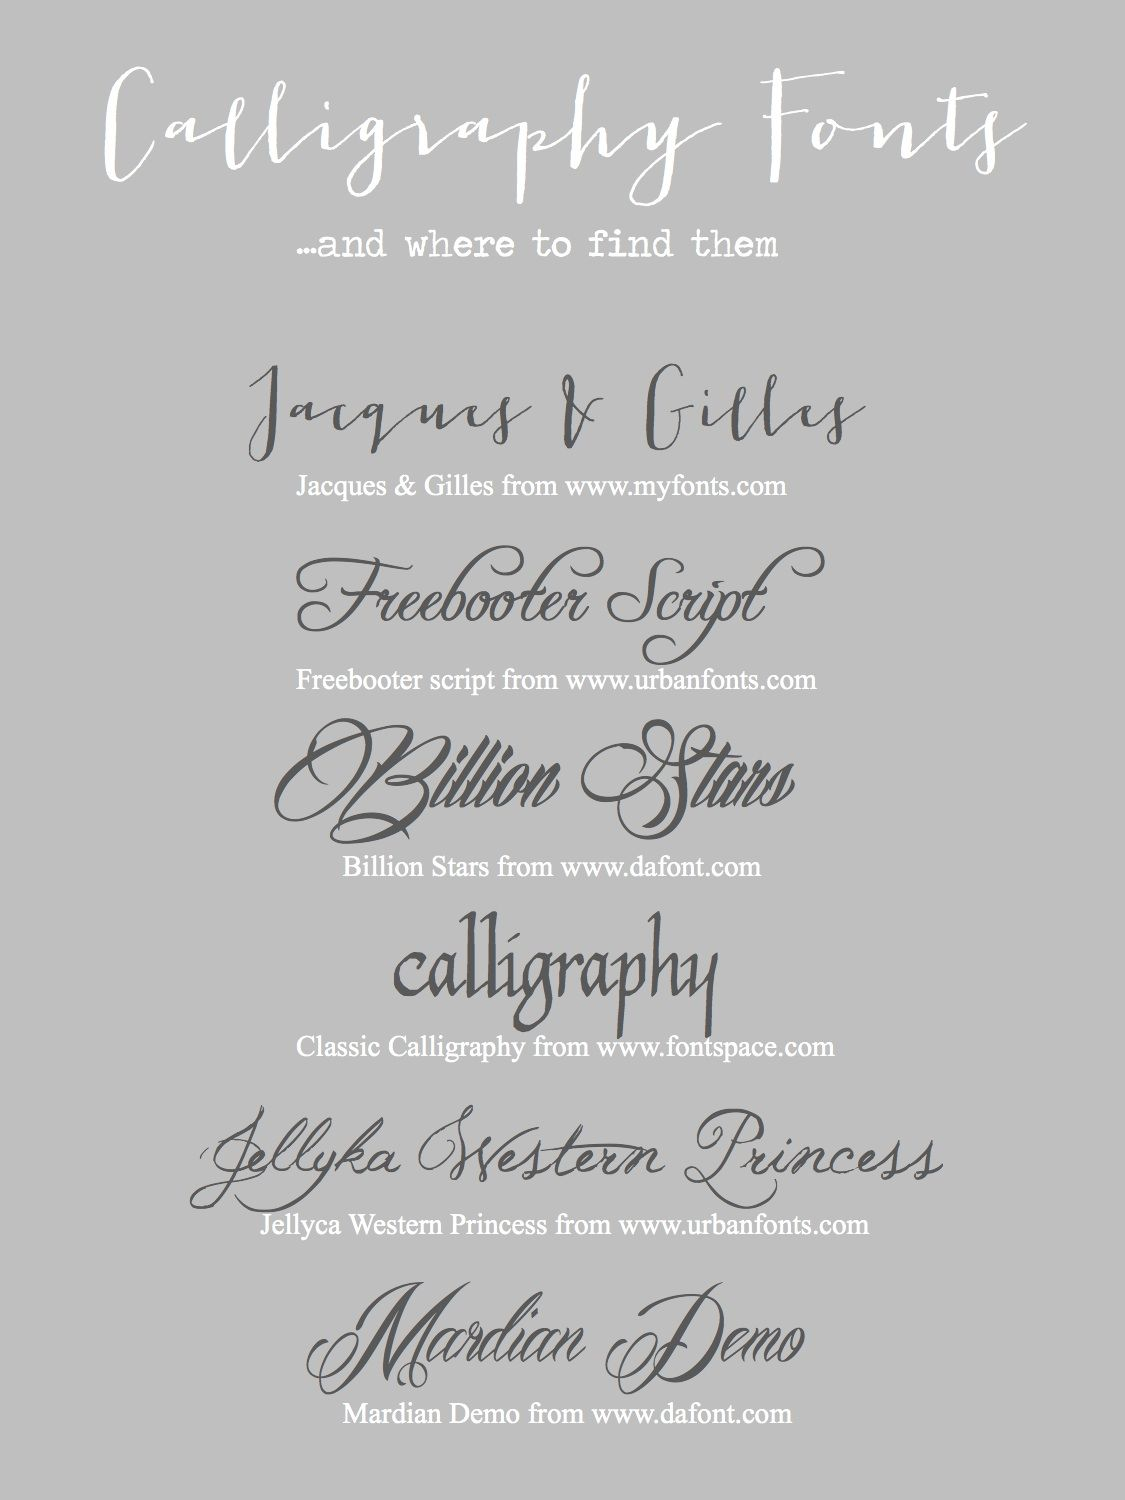 Calligraphy on your computer tutorial | Fonts and Printables ...